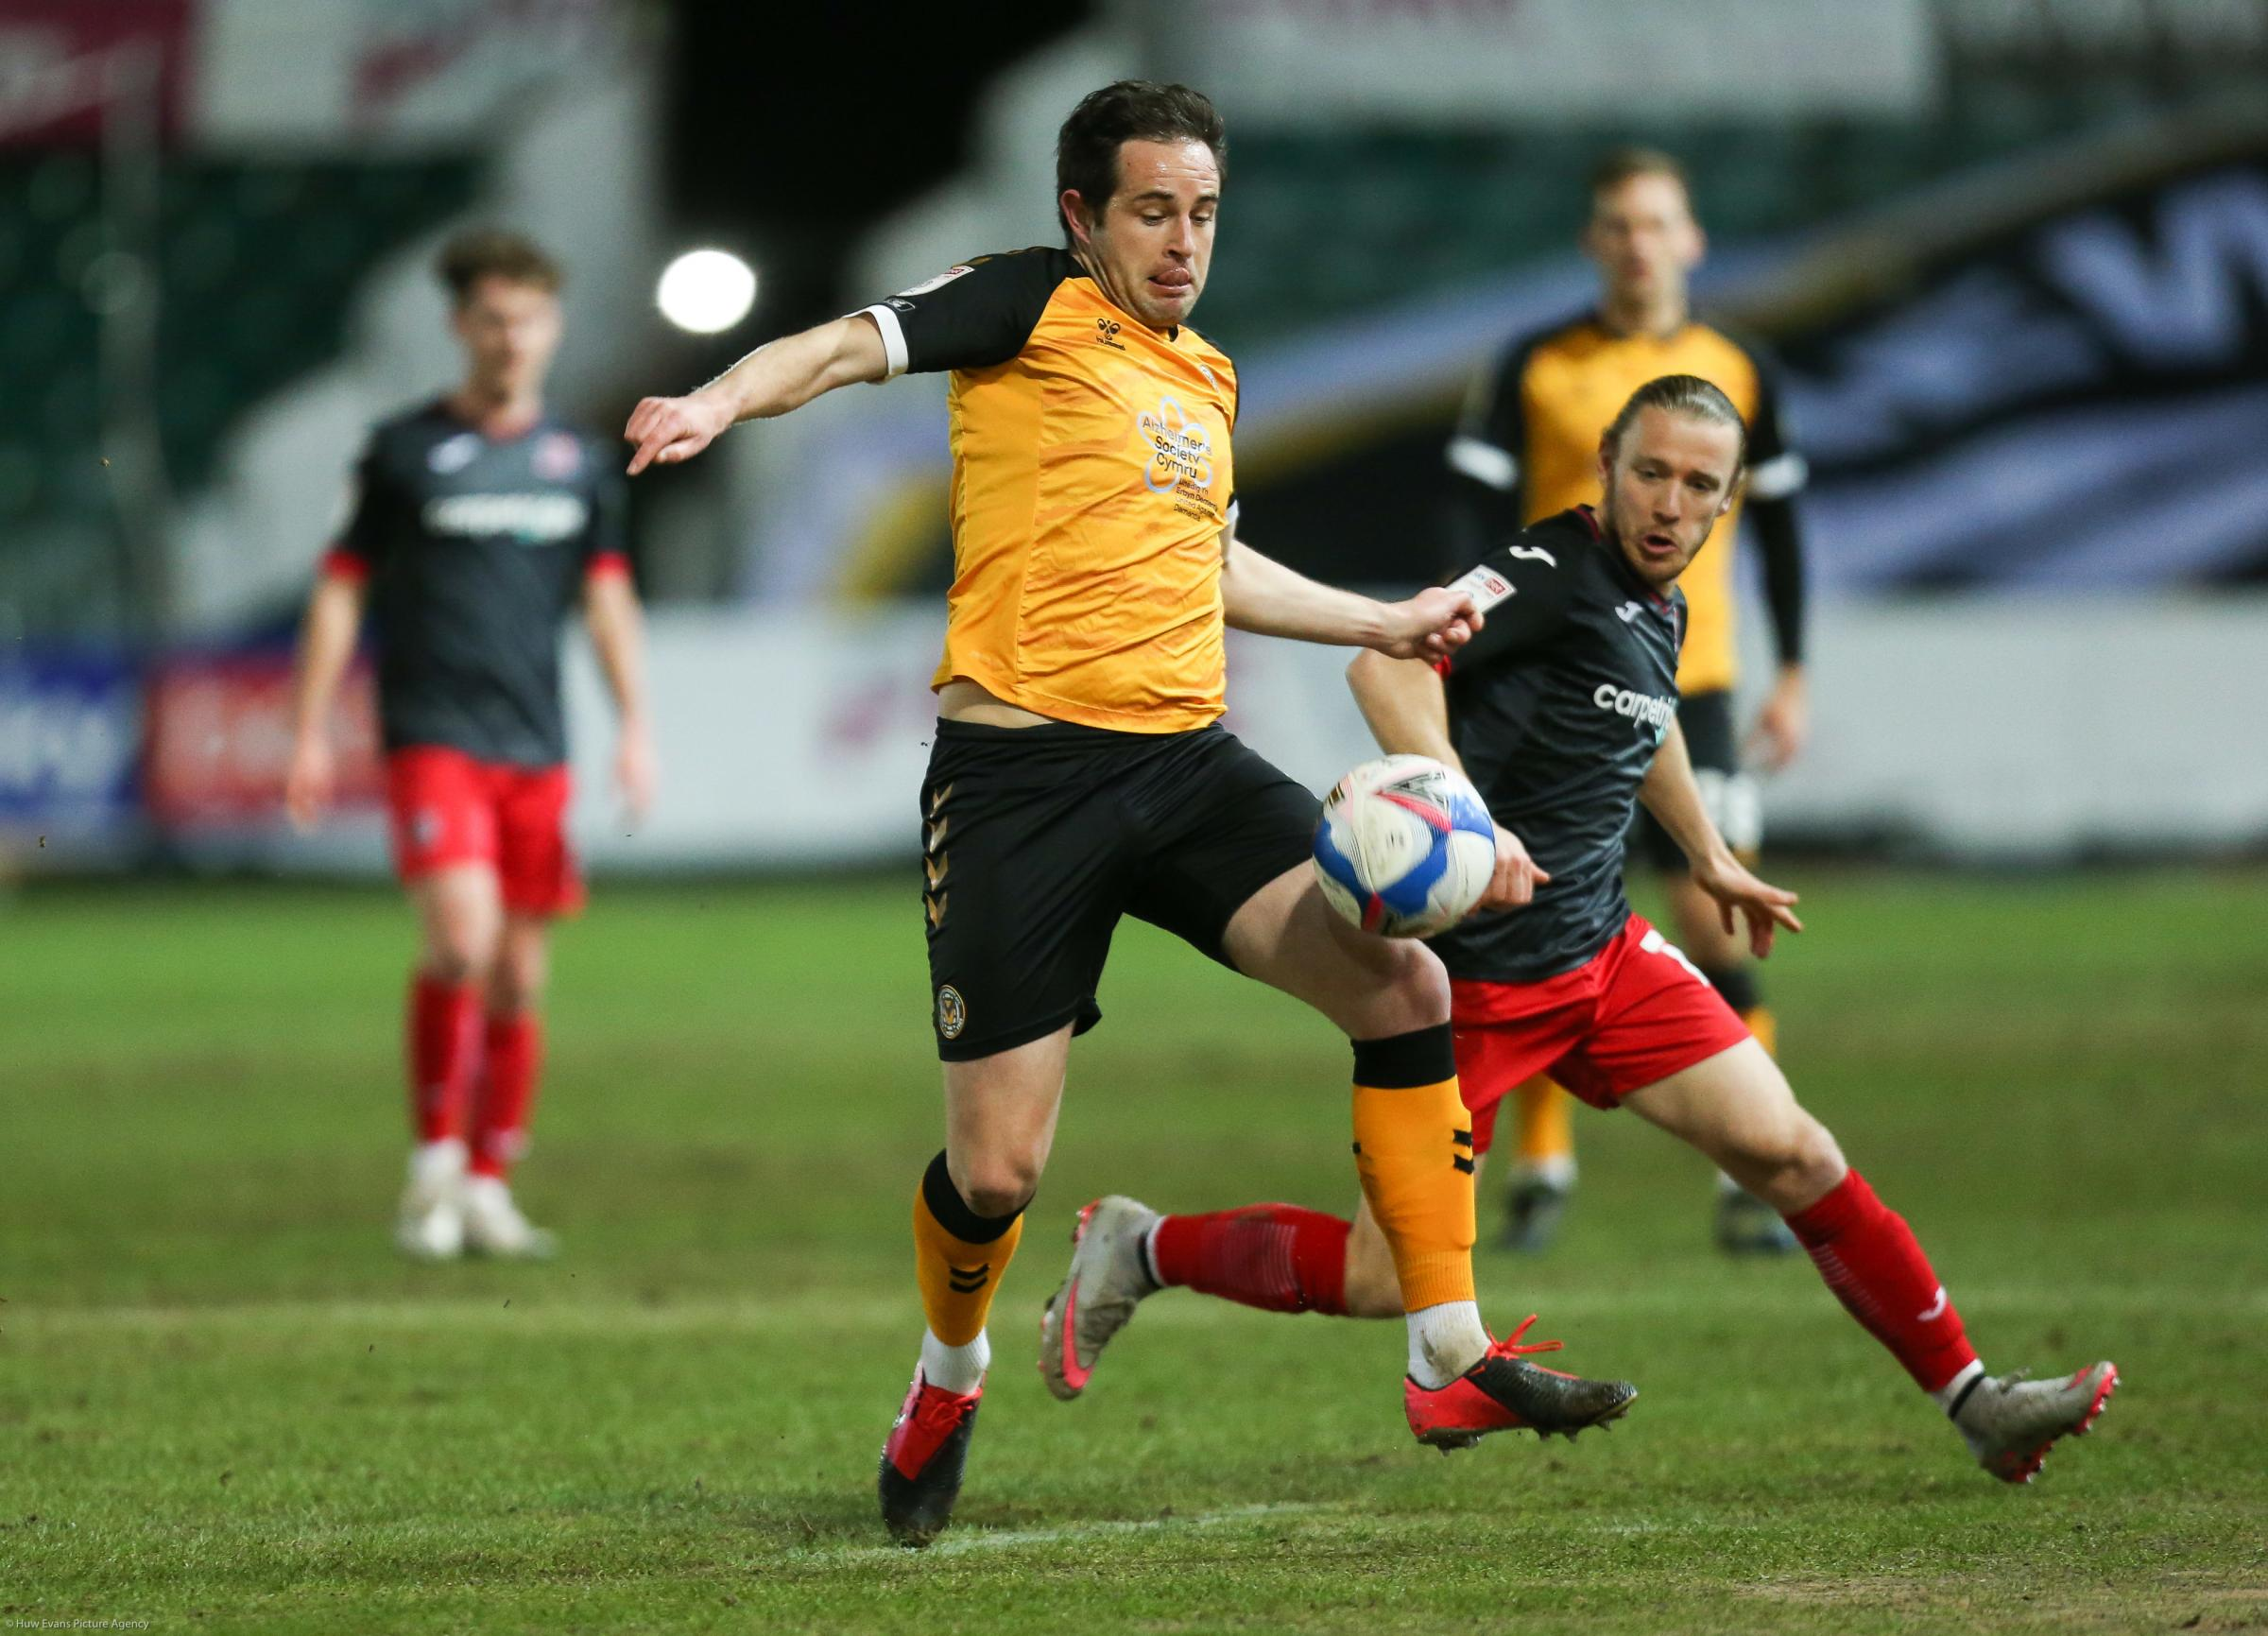 16.02.21 - Newport County v Exeter City, Sky Bet League 2 - Matty Dolan of Newport County wins the ball.